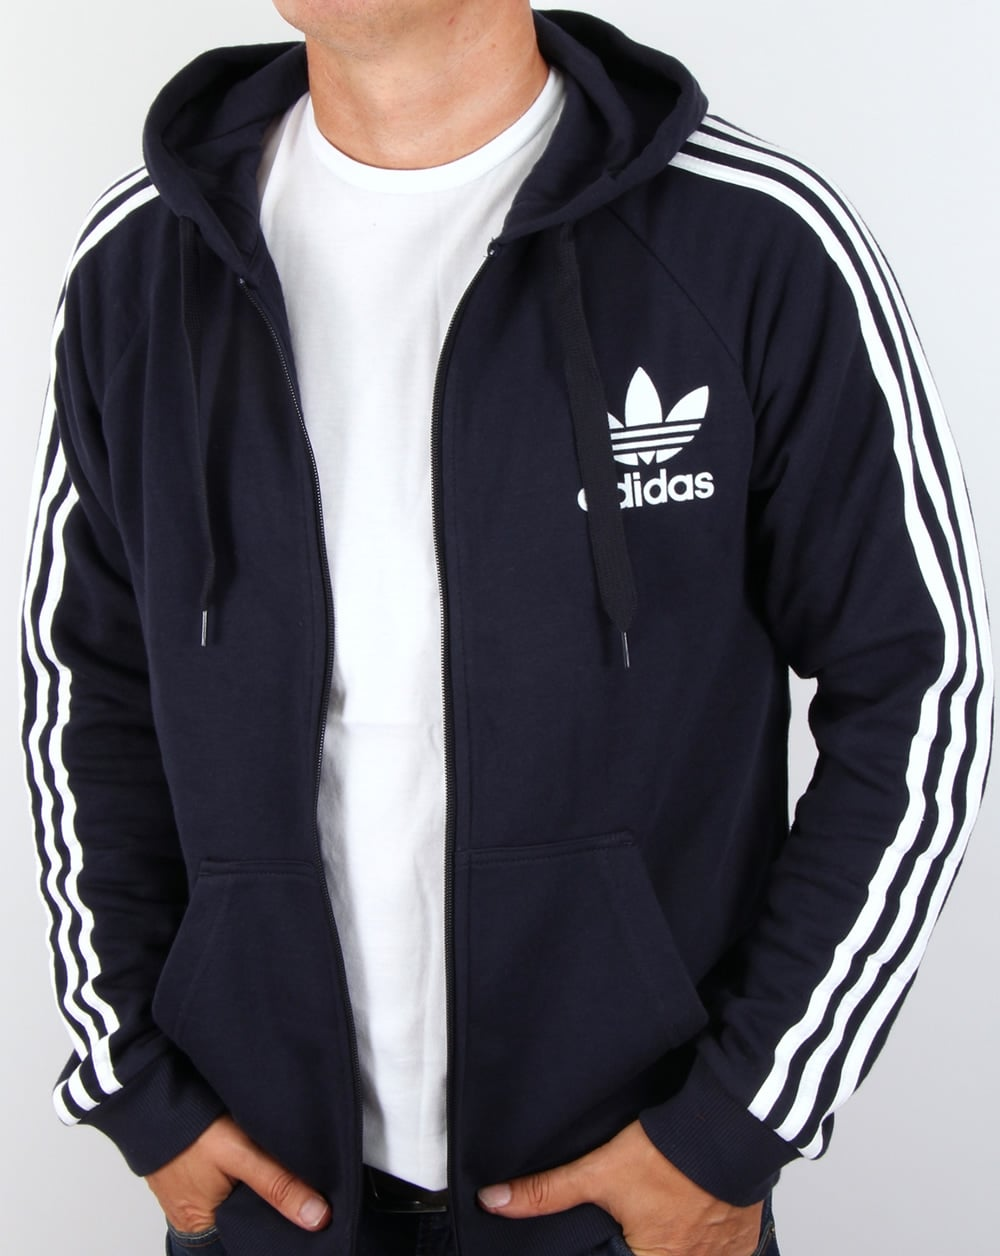 Full Zip Ink Legend Adidas Originals Hoody Calfornia 6gvbf7yY